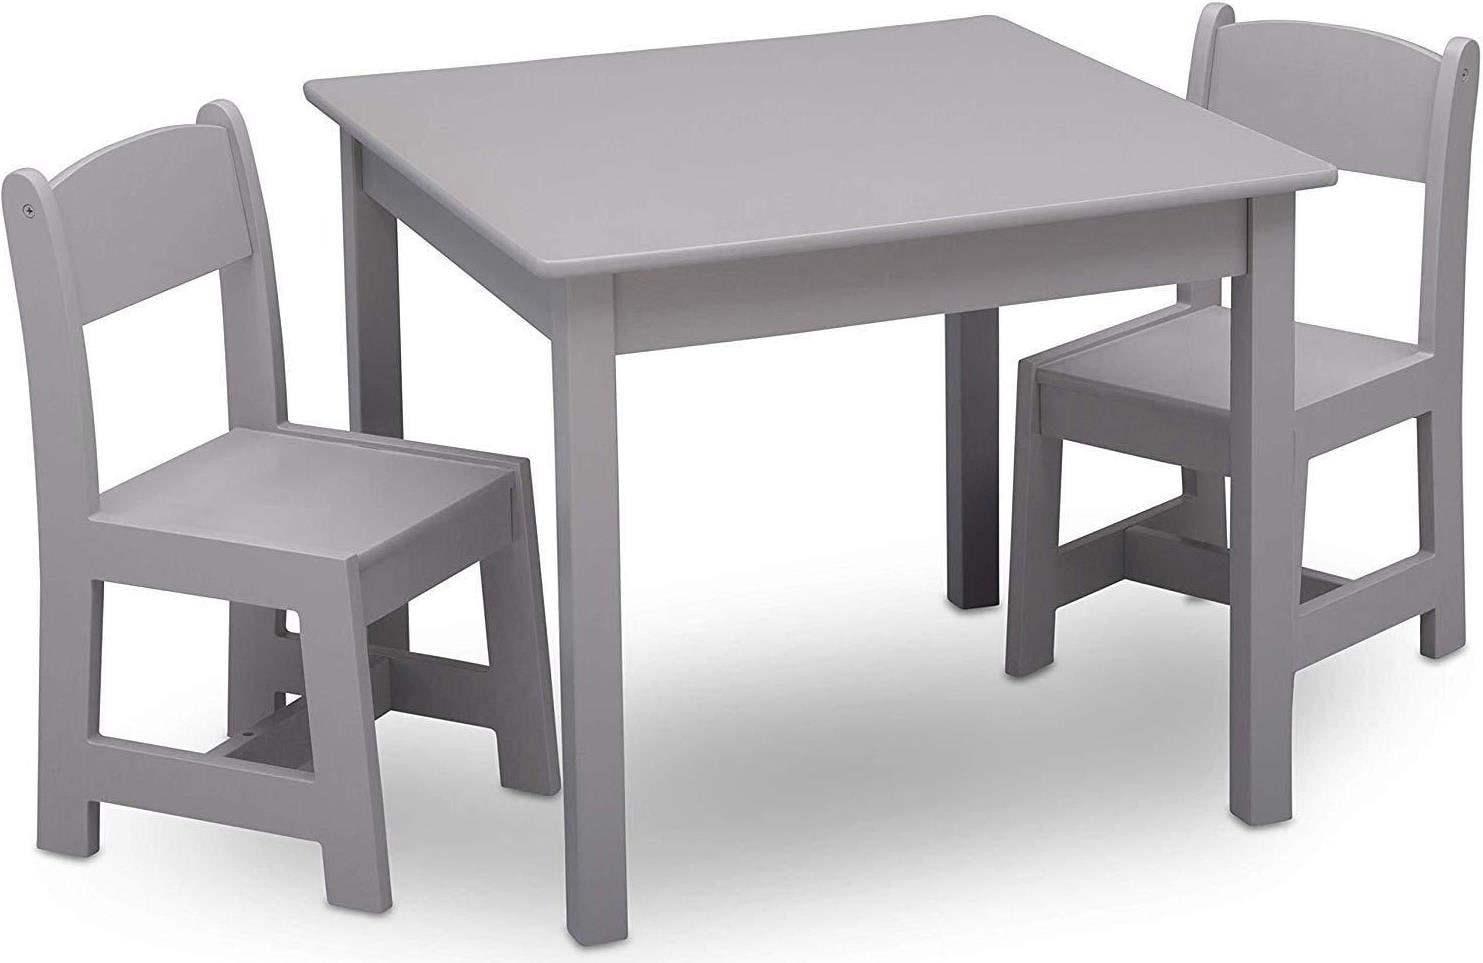 Delta Children Chair Delta Children Grey Chair Table